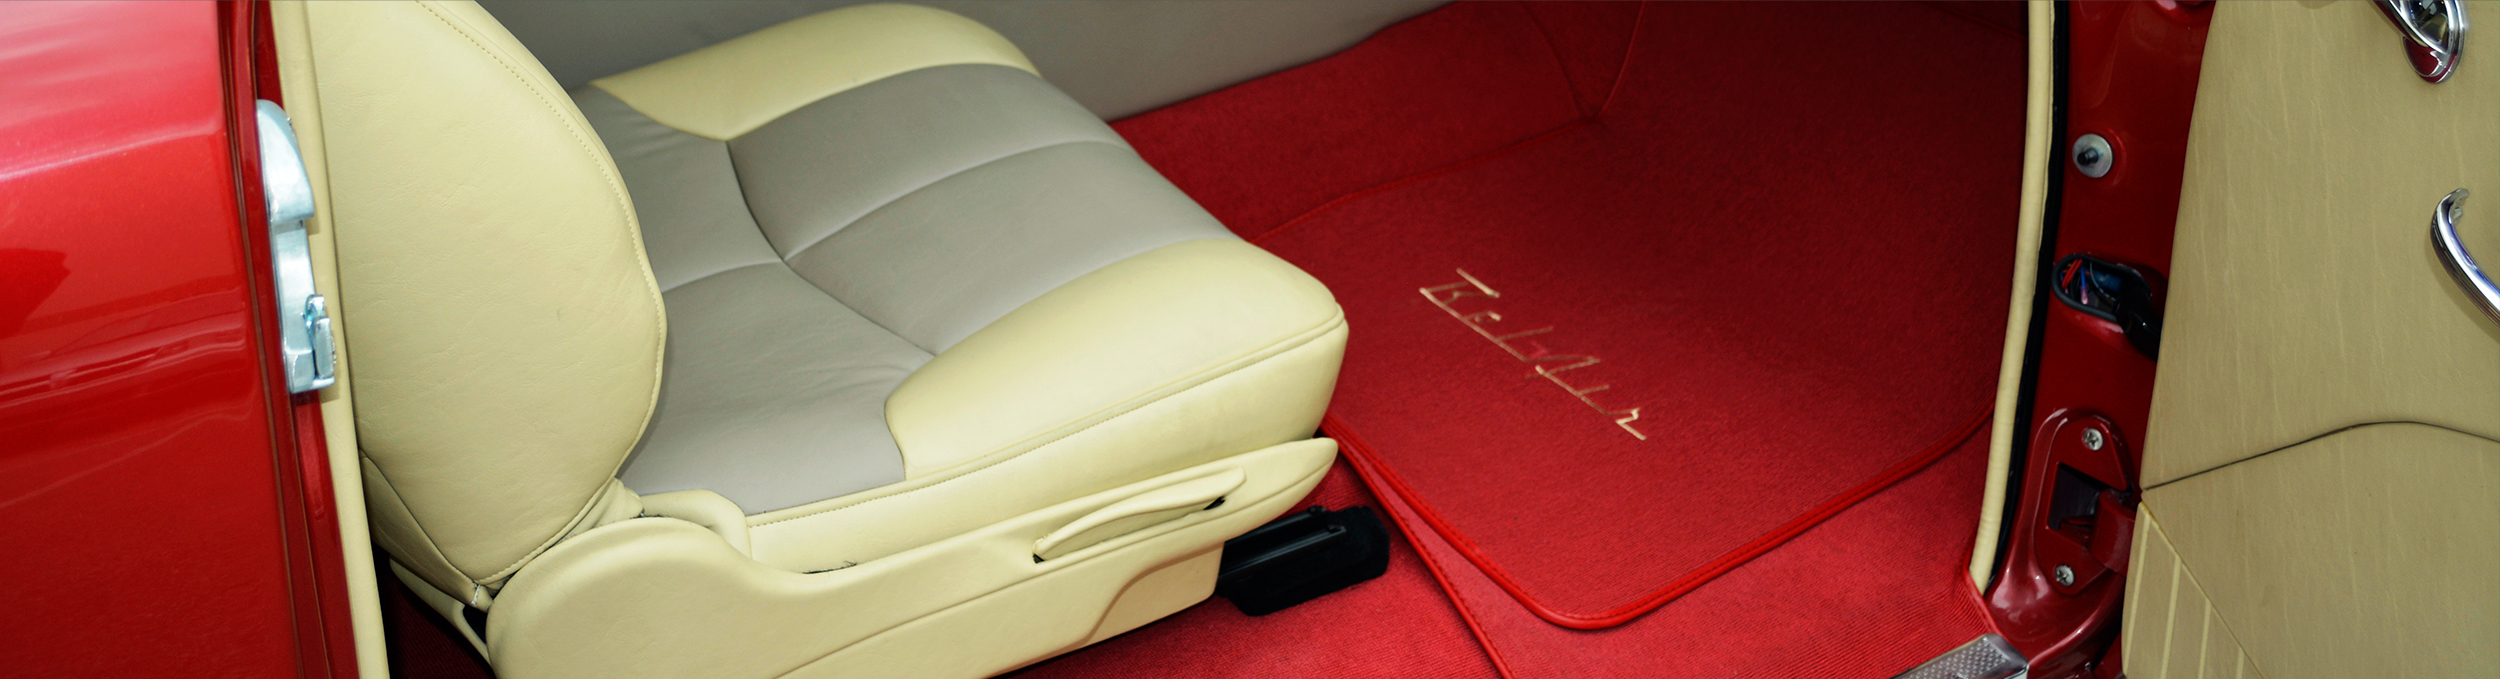 Custom Automotive Carpet, Floor Mats, & More | Auto Custom